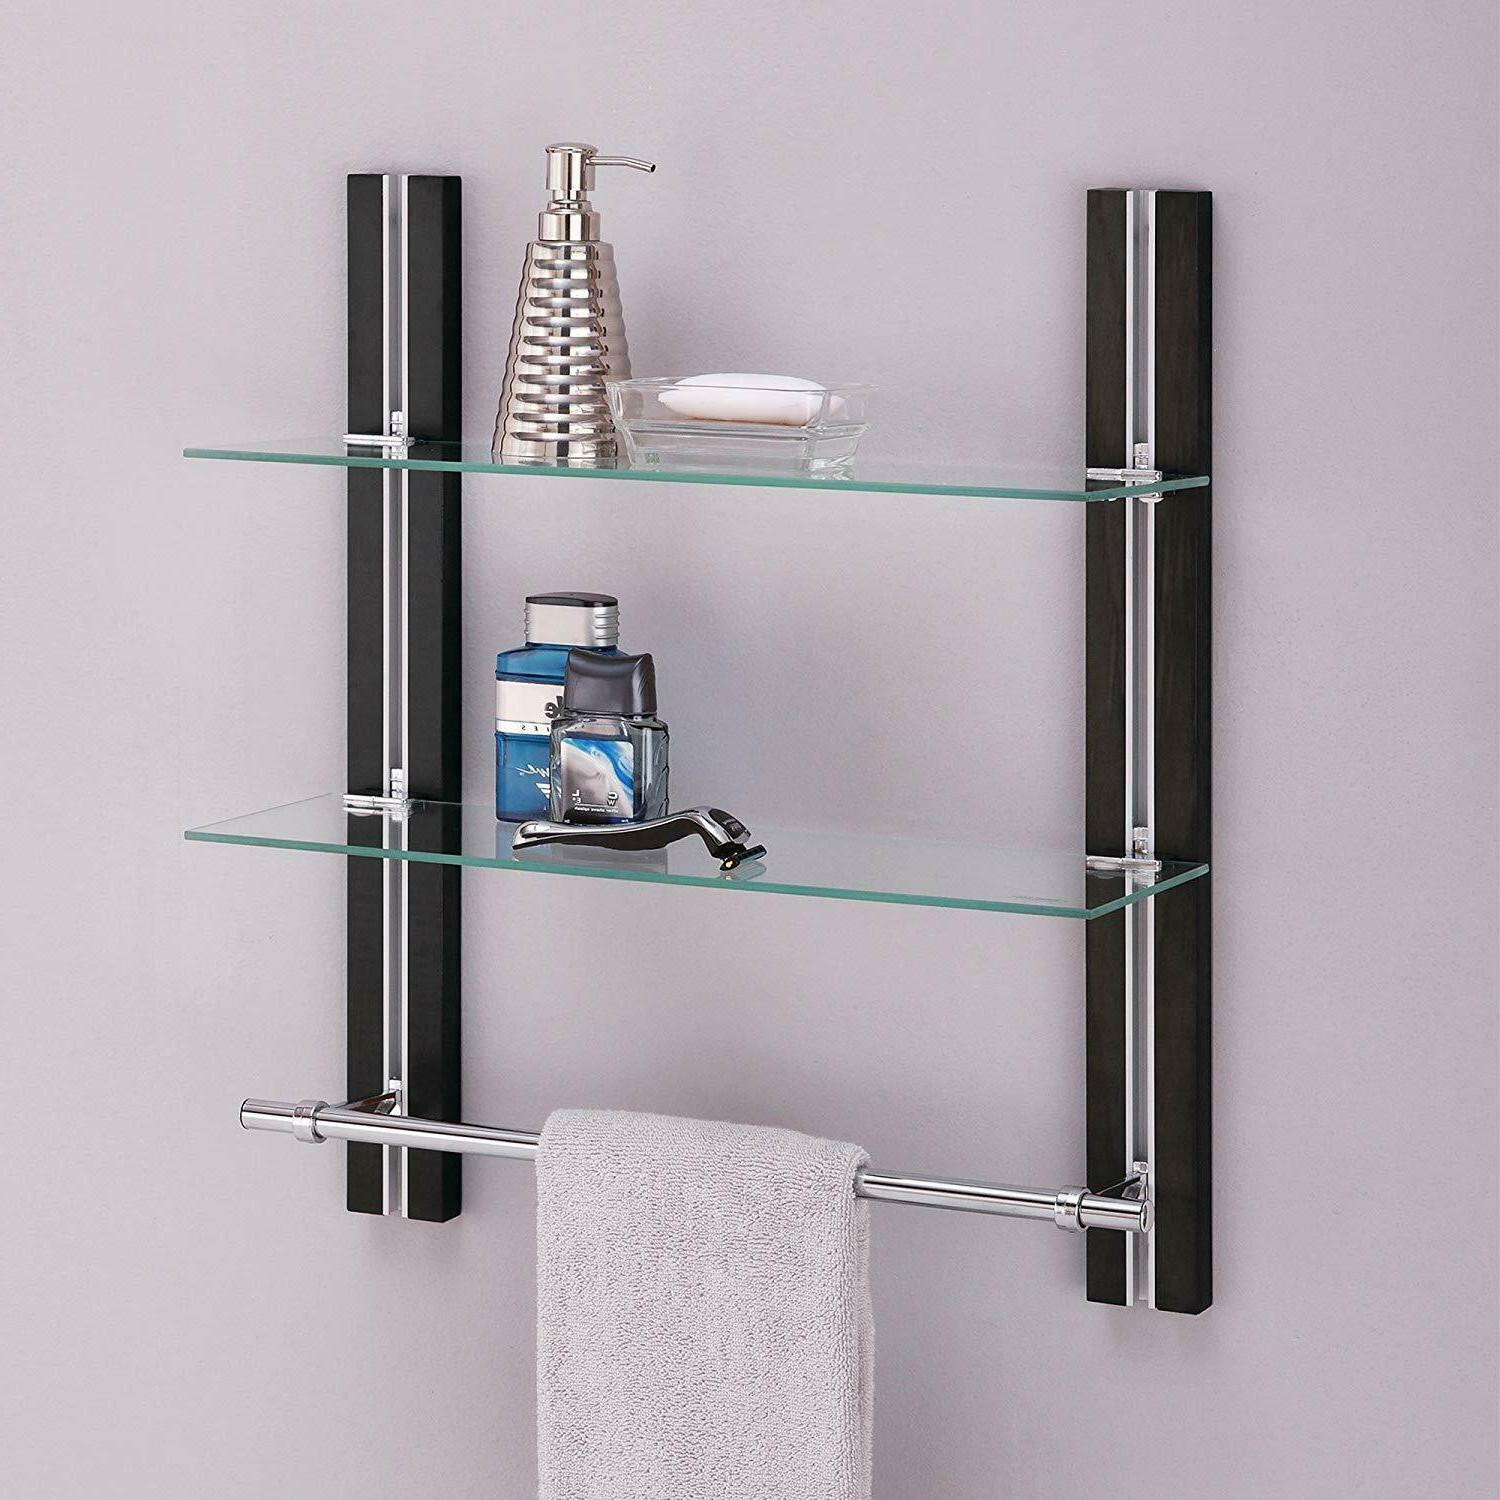 2 Bathroom Tempered Glass Adjustable with Chrome Towel Bar Home Style